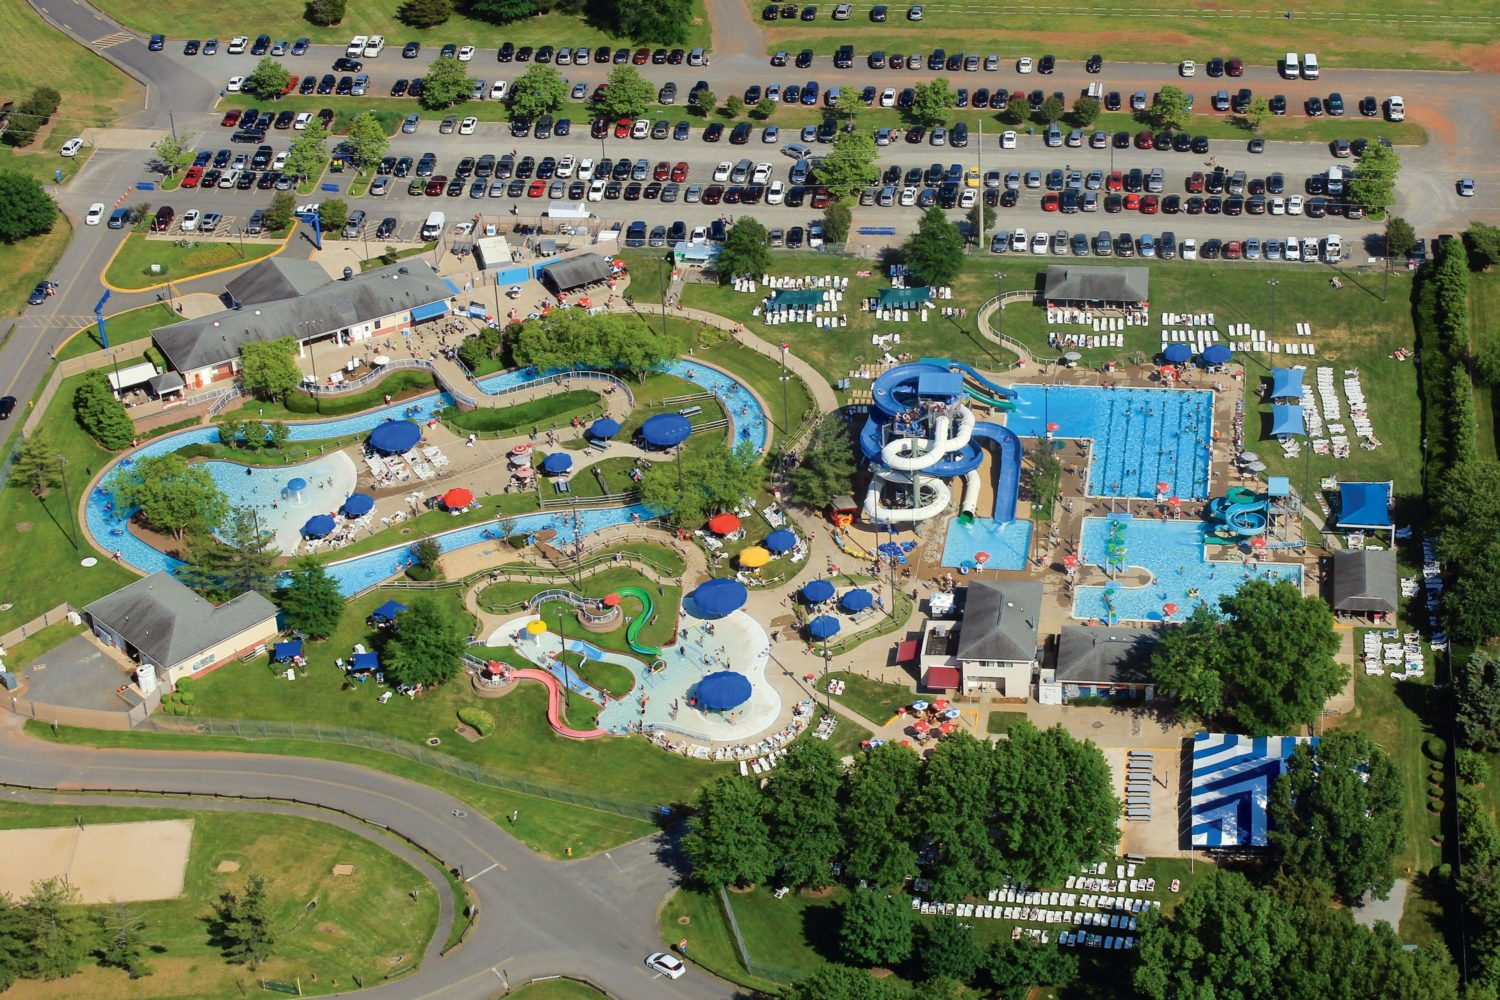 SplashDown water park. Photograph of SplashDown courtesy of SplashDown Water Park.